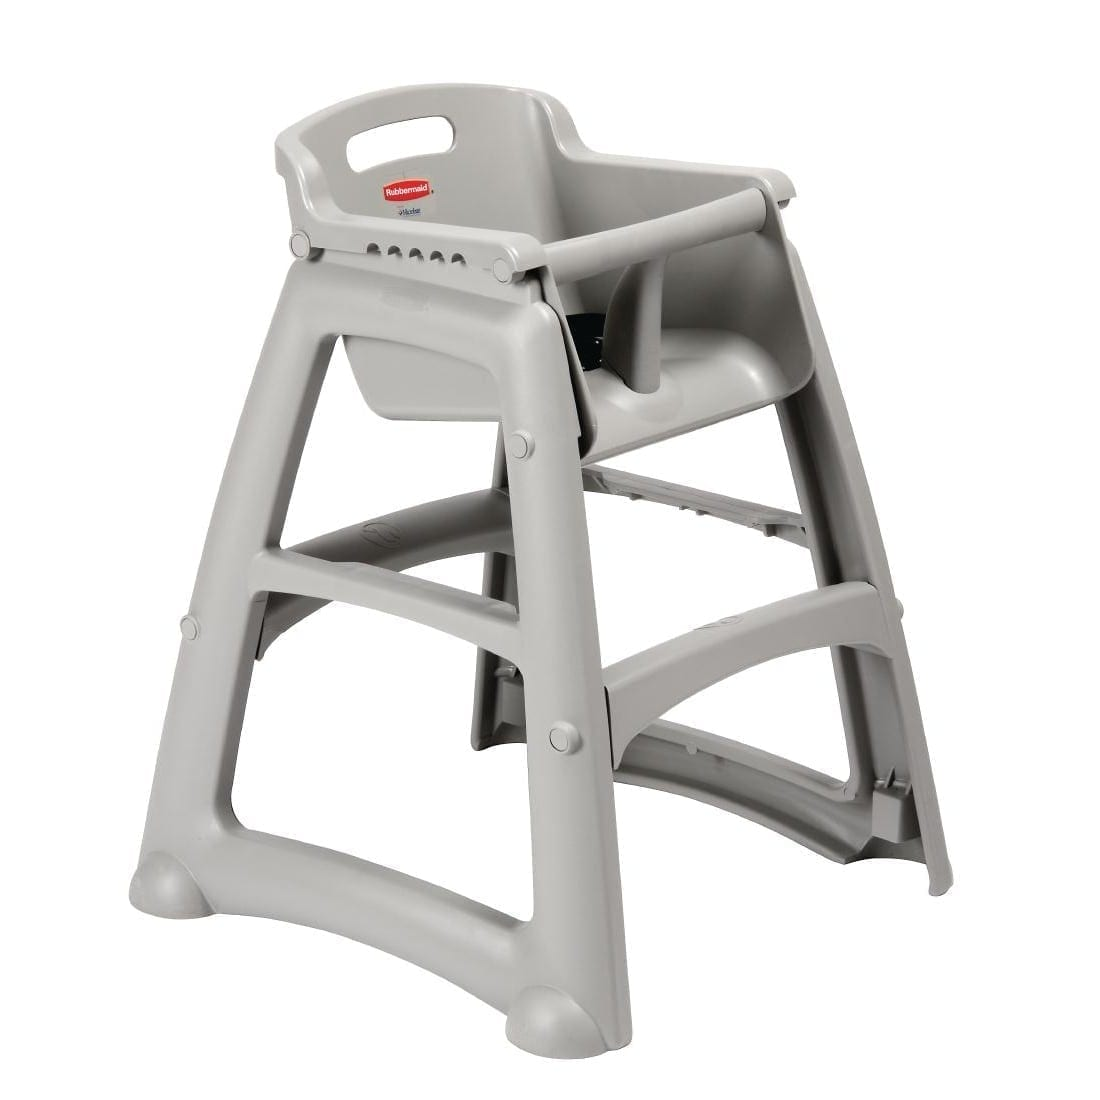 Rubbermaid Sturdy Chair Youths Seat Platinum-0